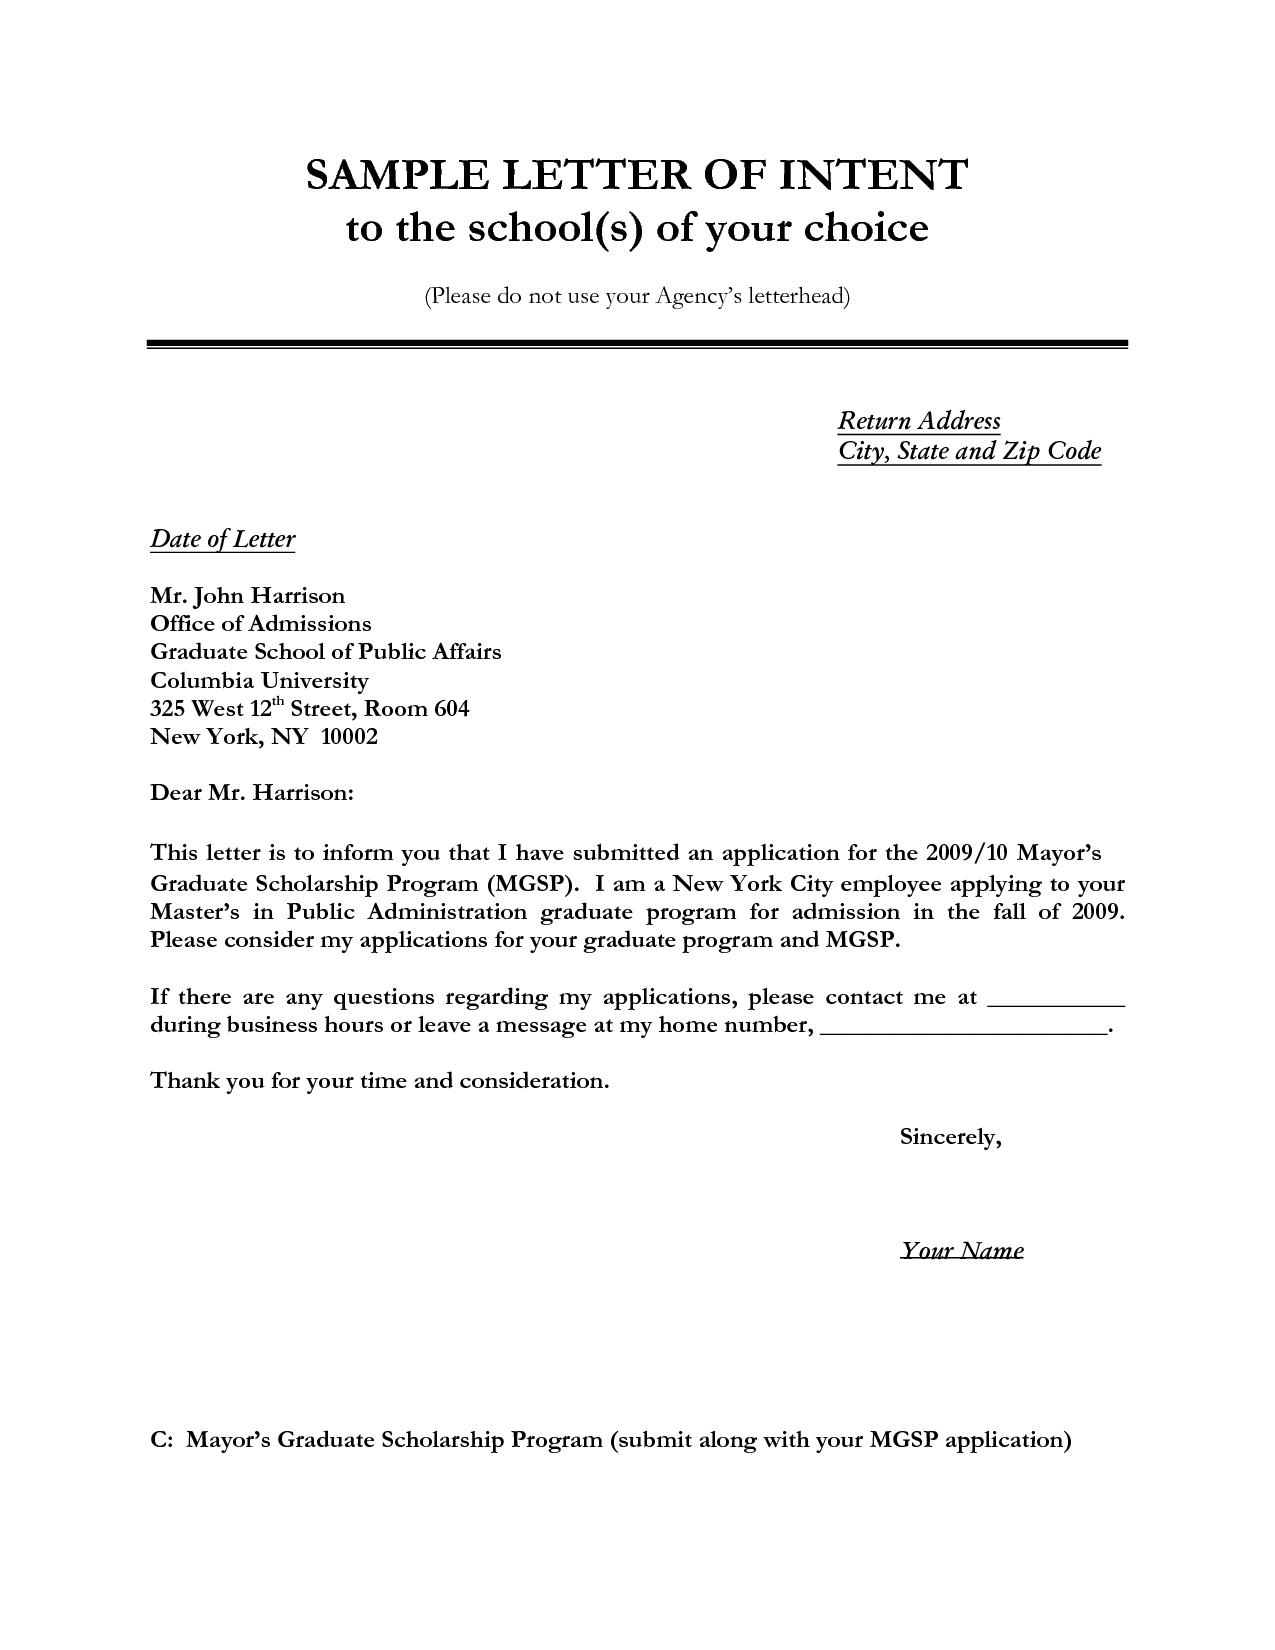 Letter Of Intent Template - Letter Of Intent Sample